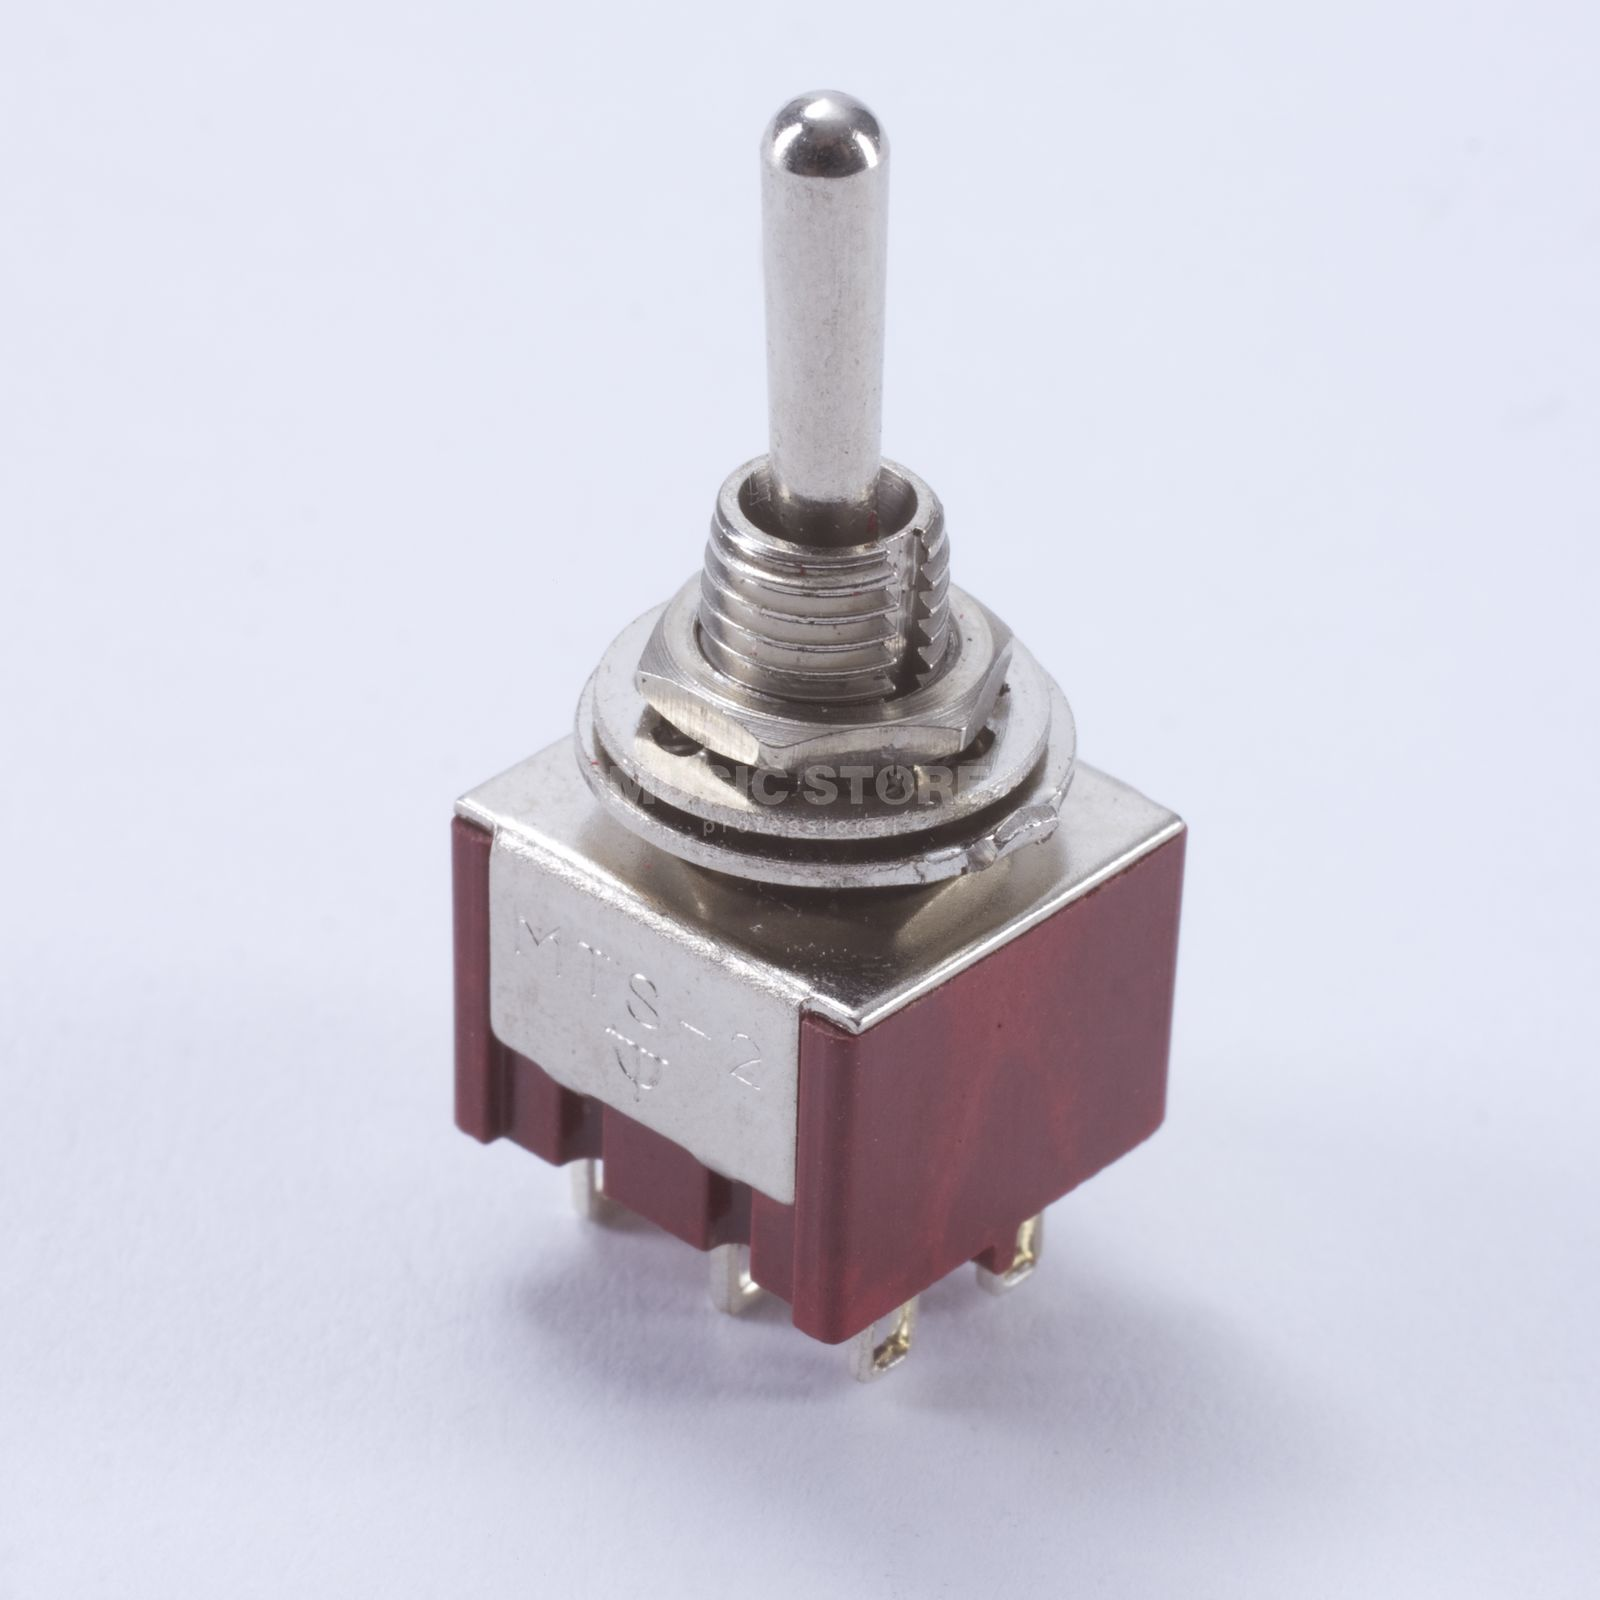 WSC Partsland M305 mini Switch on-on-on 6 pin, chrom, runder Hebel Product Image